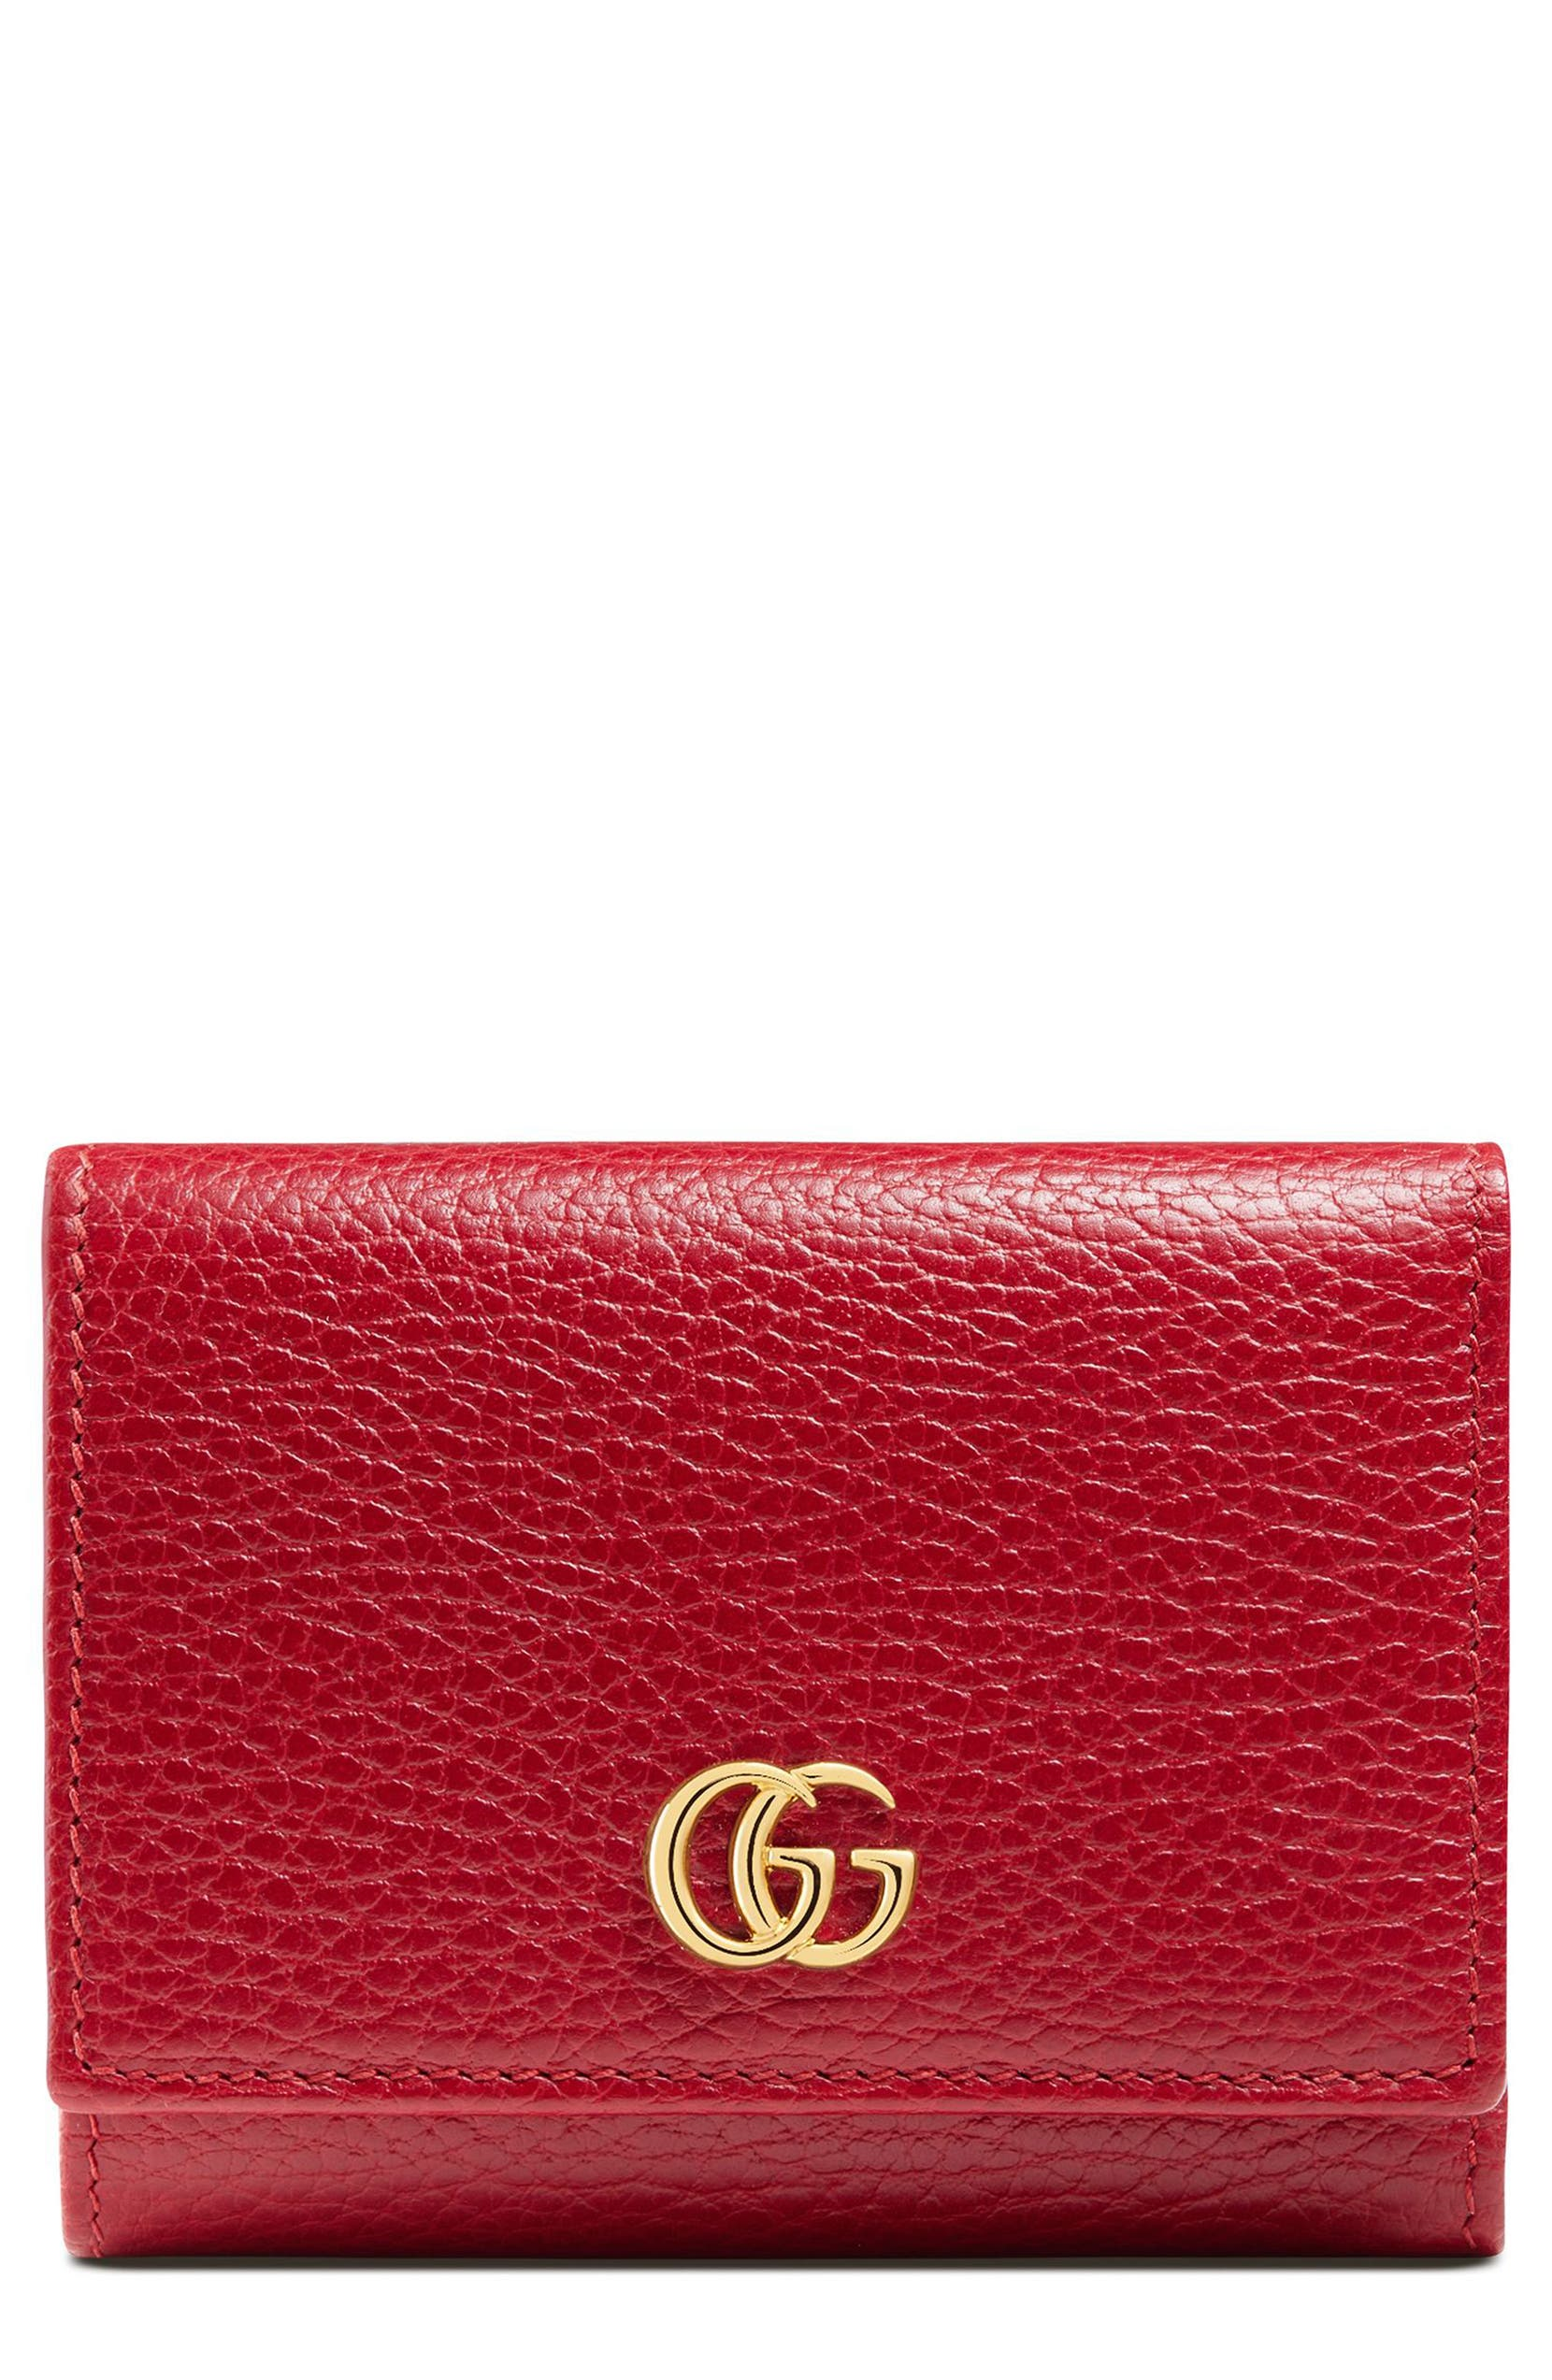 fc029a1c4200 Gucci Petite Marmont Leather French Wallet | Nordstrom